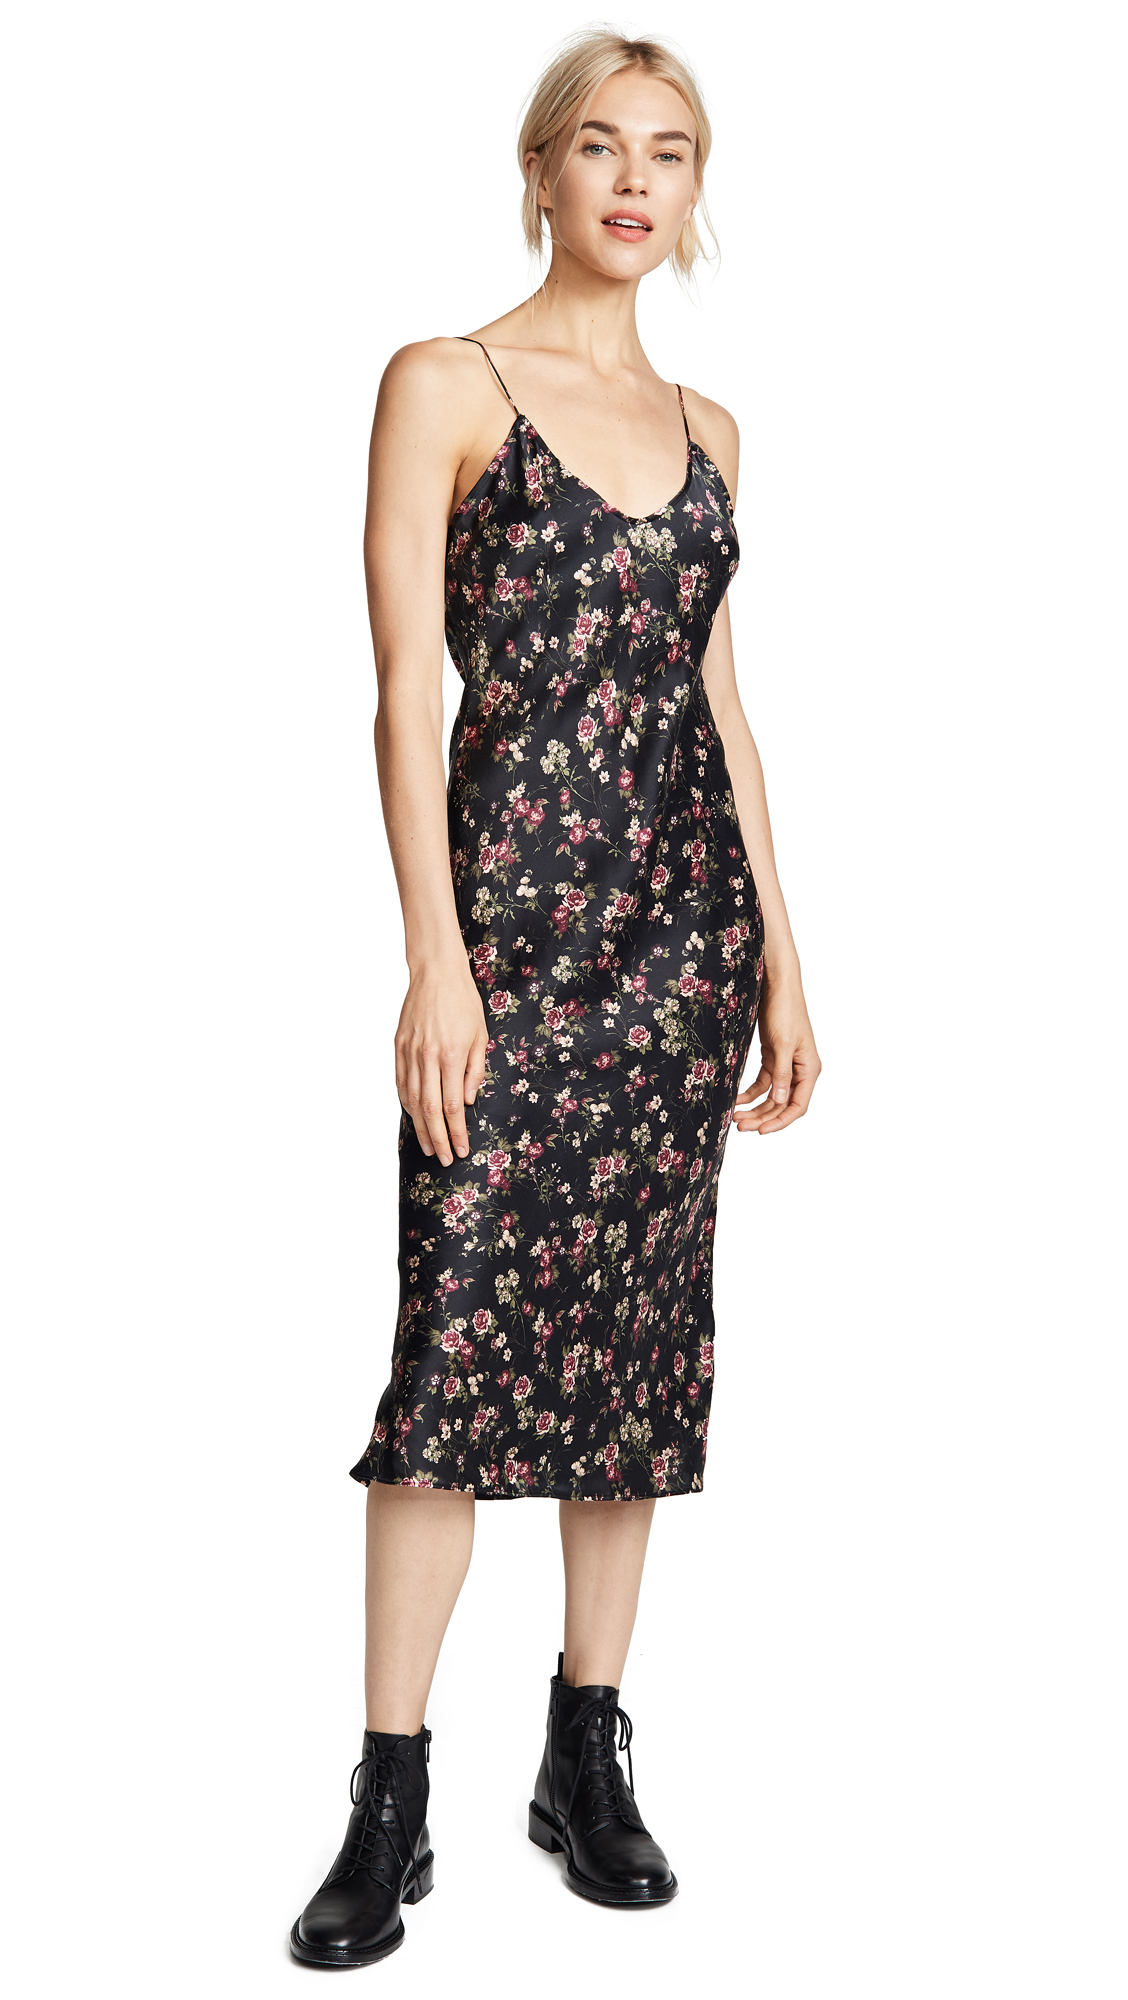 CAMI NYC Raven Dress In Dark Rose Print